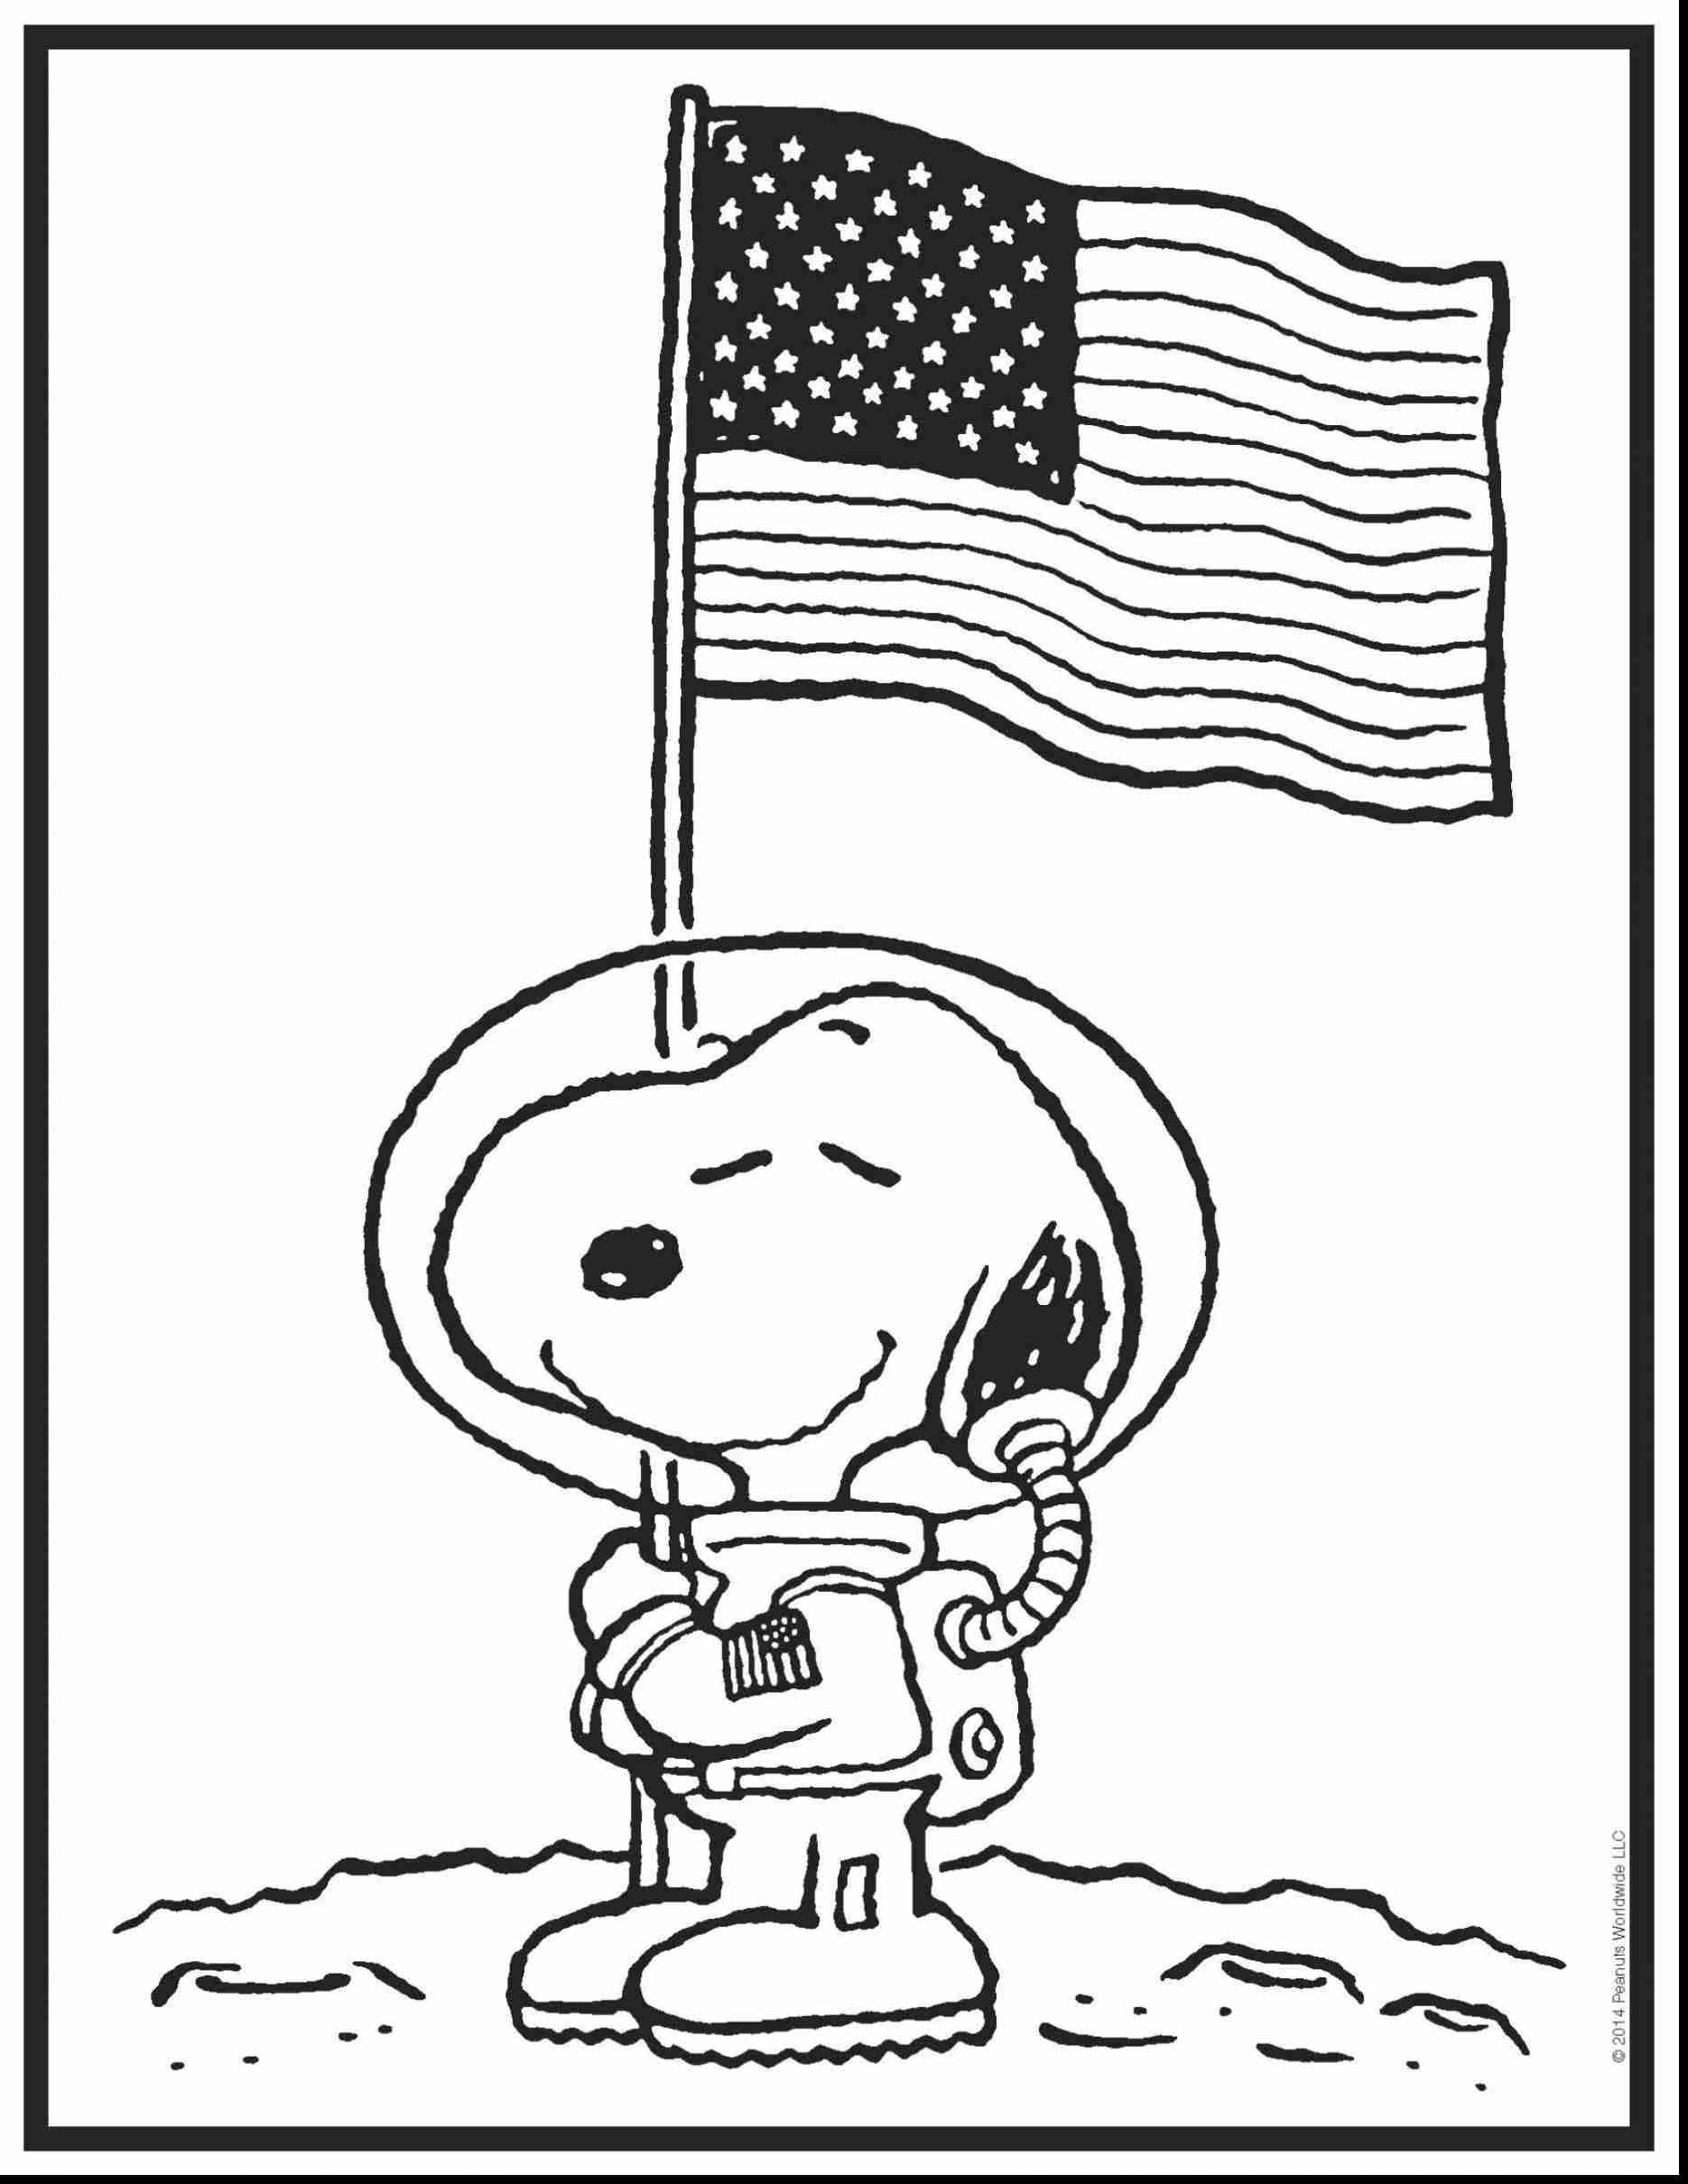 Peanuts Coloring Pages Coloring Page Peanuts Easter Coloring Page Snoopy Pages Davemelillo Com Snoopy Coloring Pages Snoopy Drawing Halloween Coloring Pages